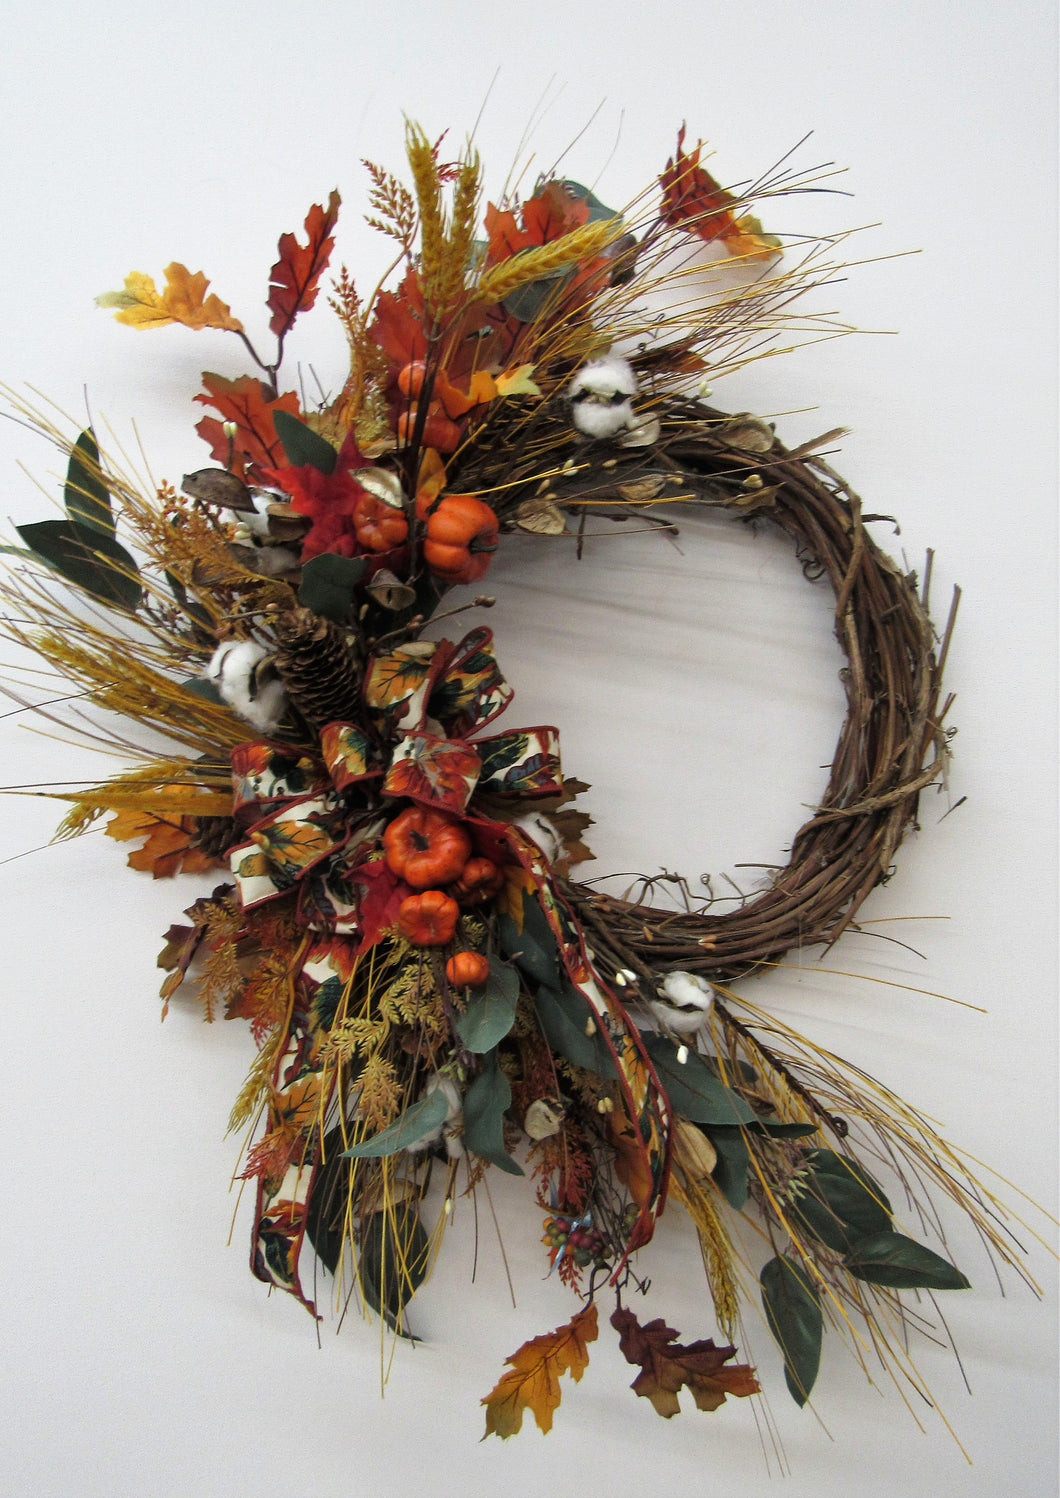 Gallery/Harv150 - April's Garden Wreath